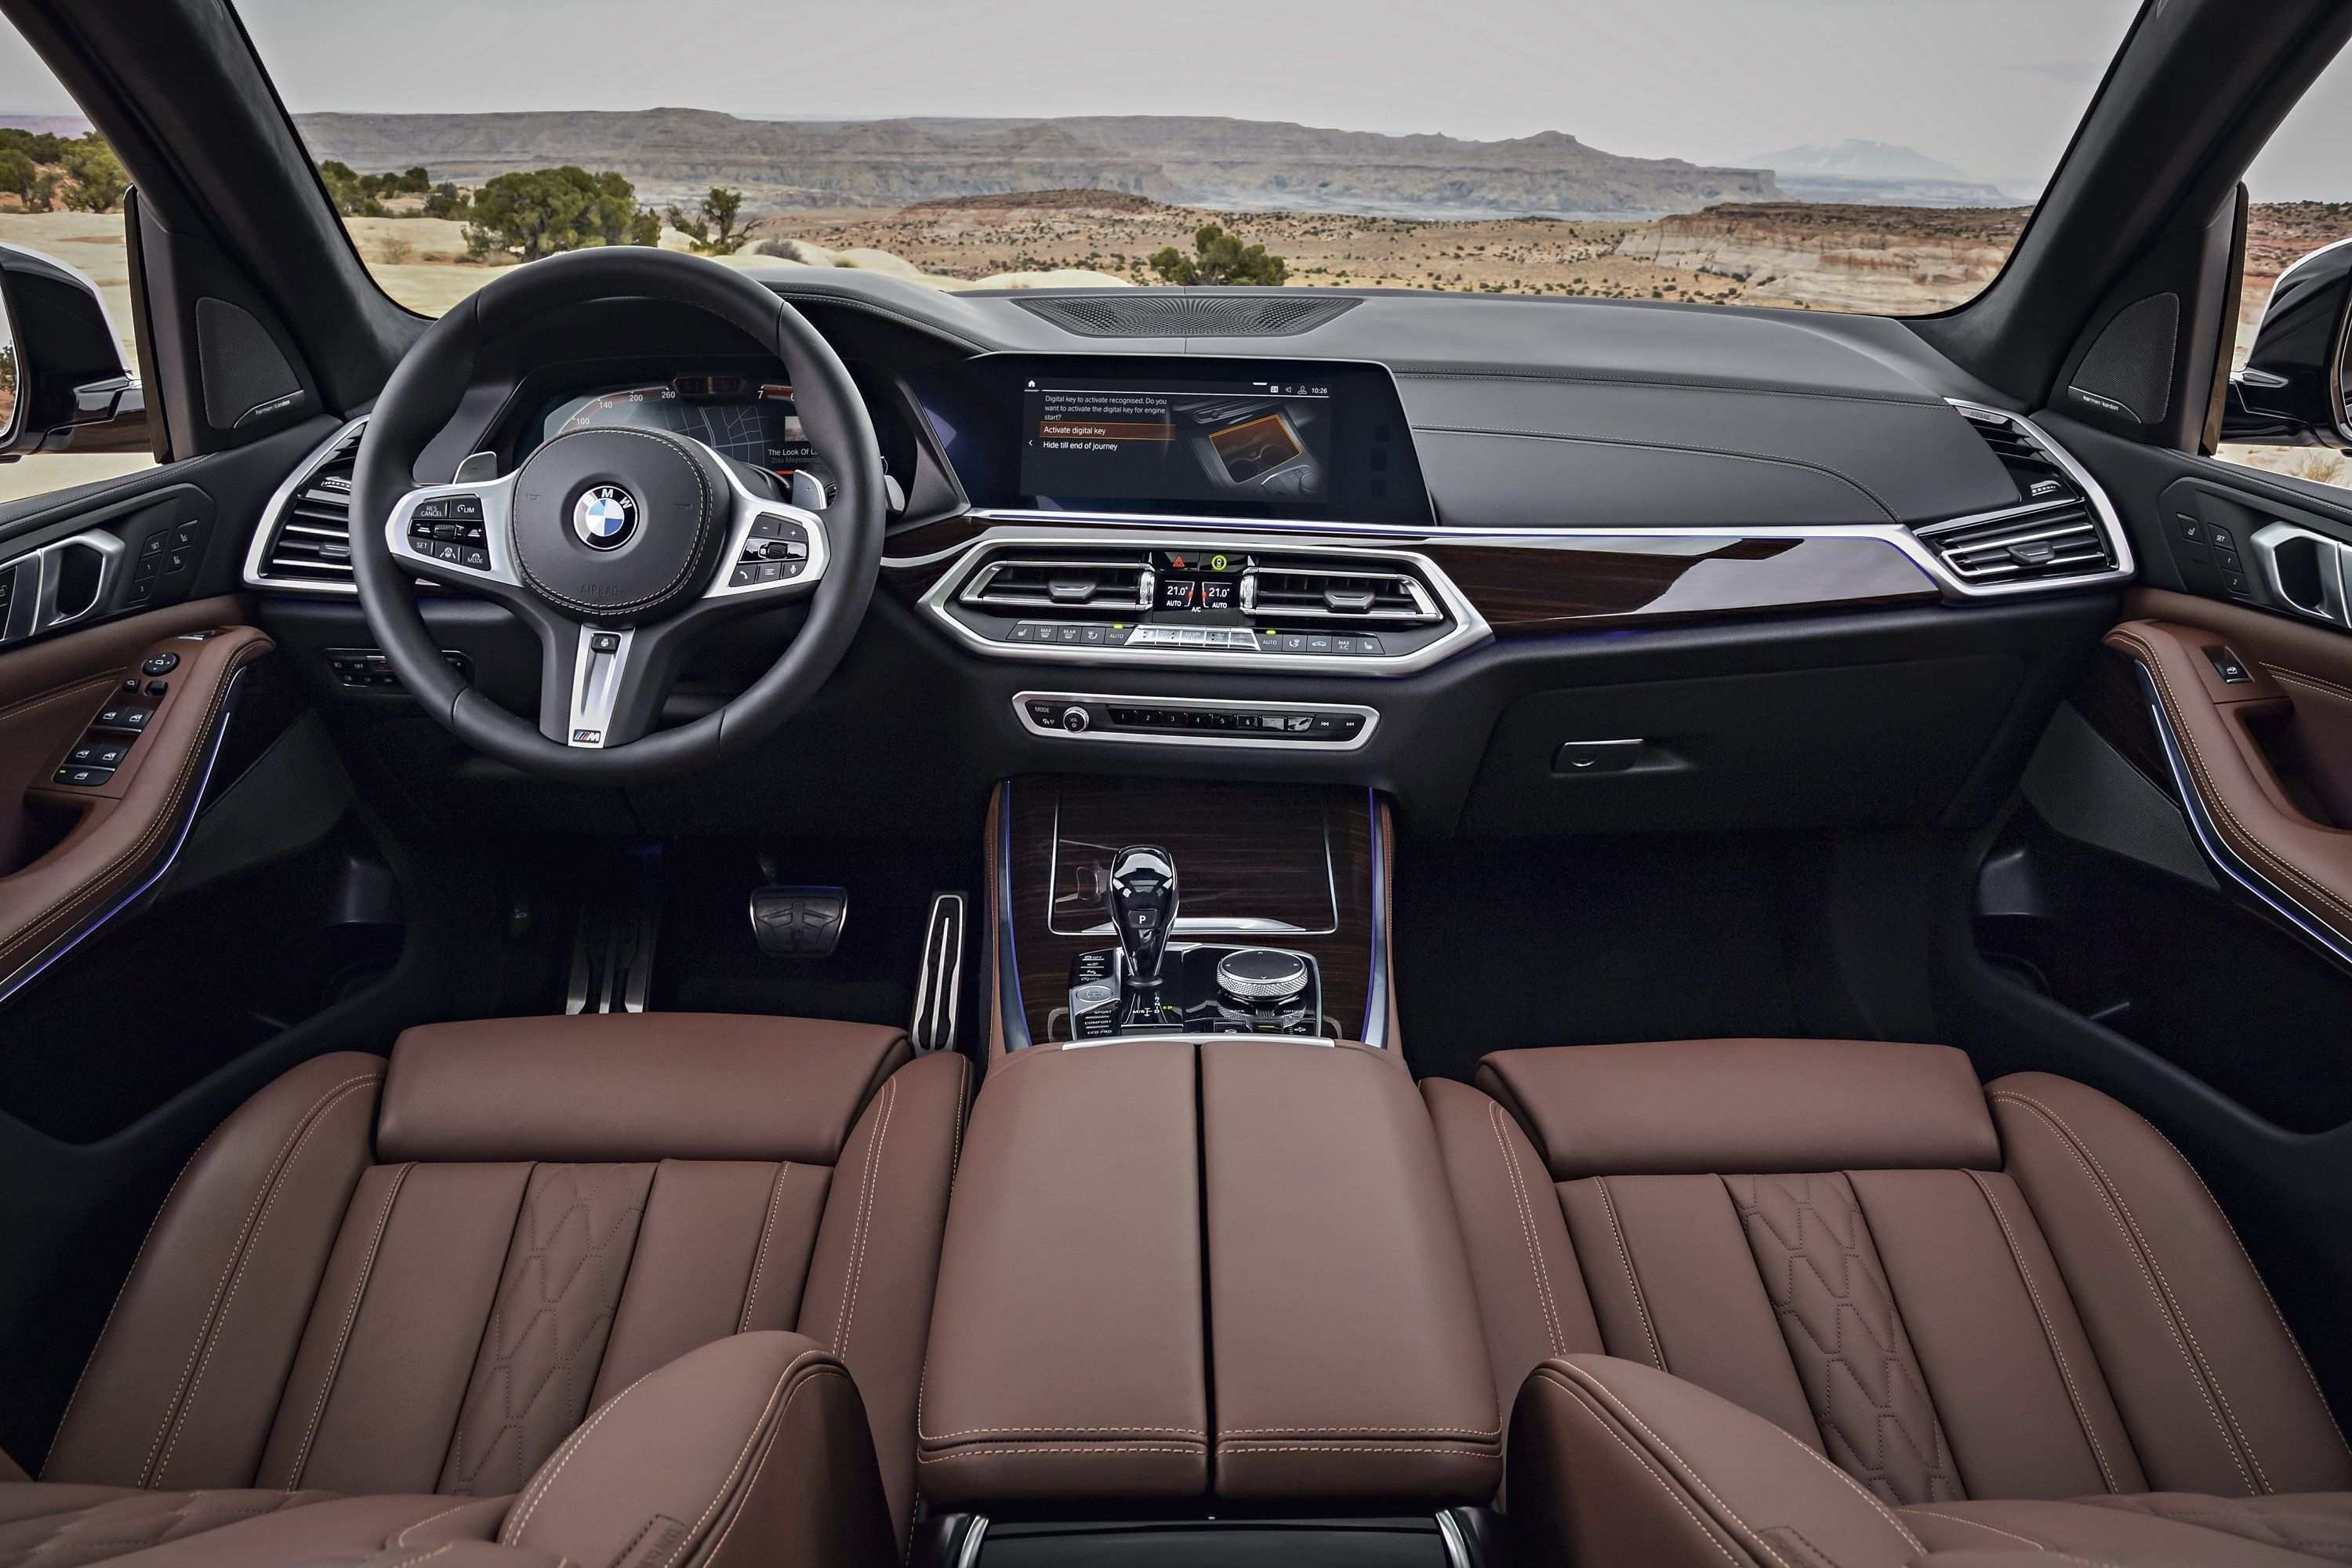 70 Best 2019 Bmw Terrain Interior Picture